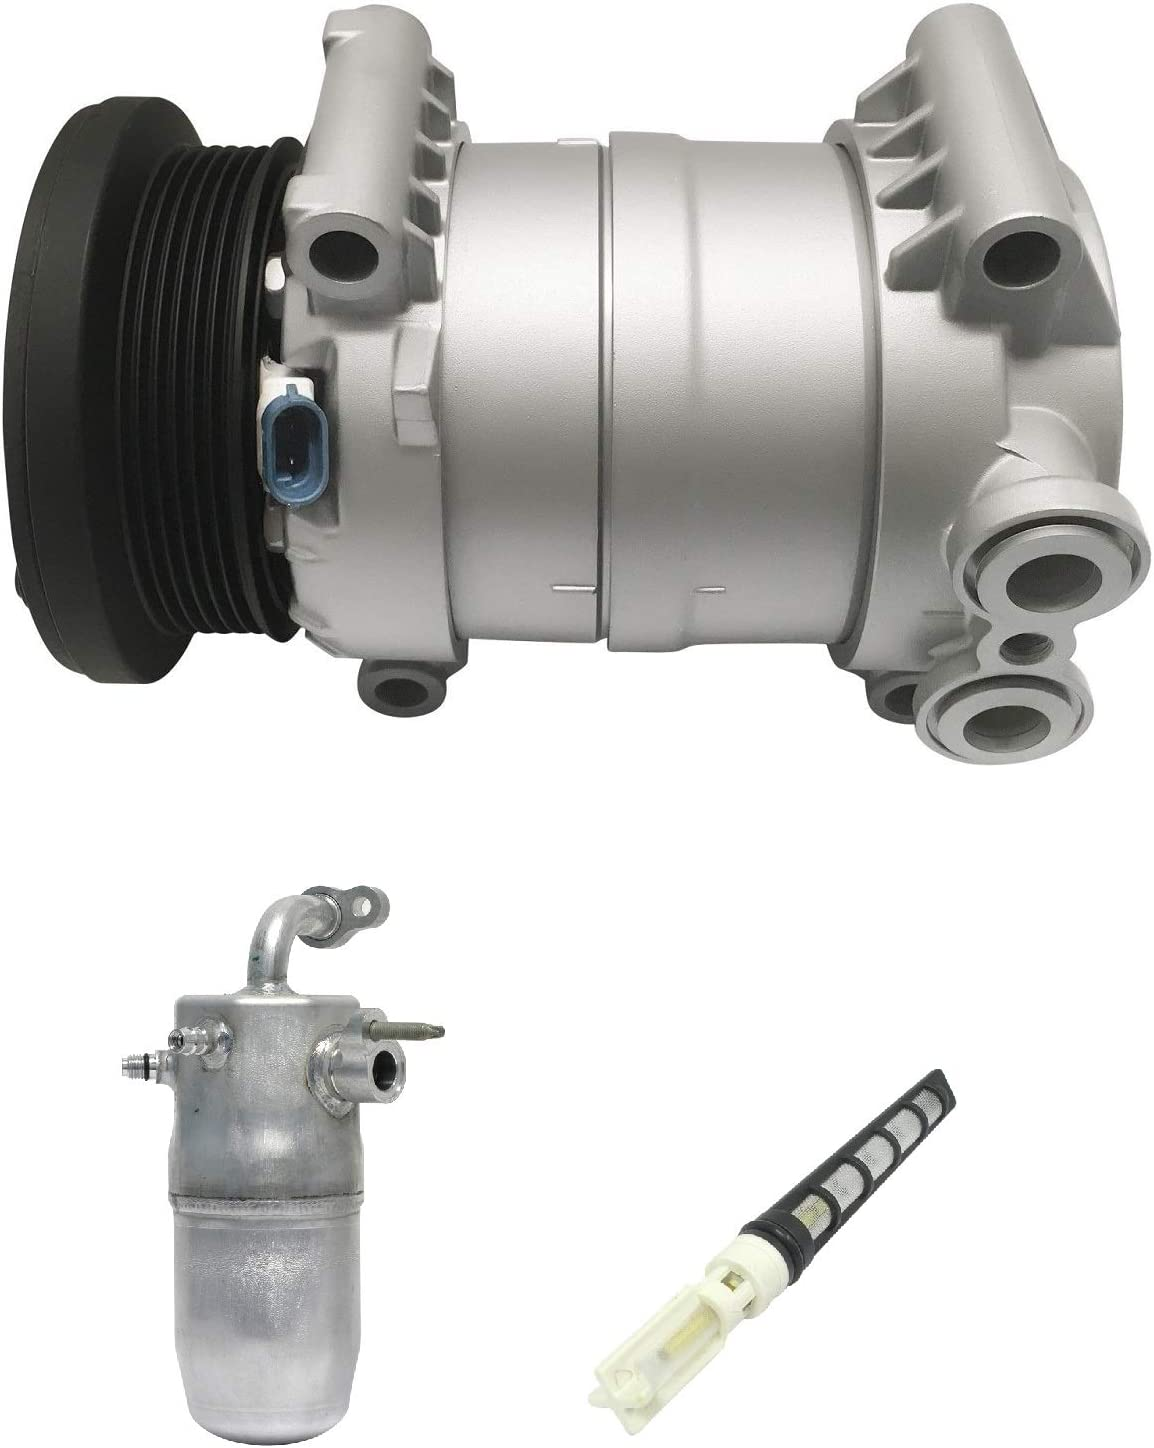 Sale Special Price RYC Remanufactured AC Compressor KT DB05 Kit At the price